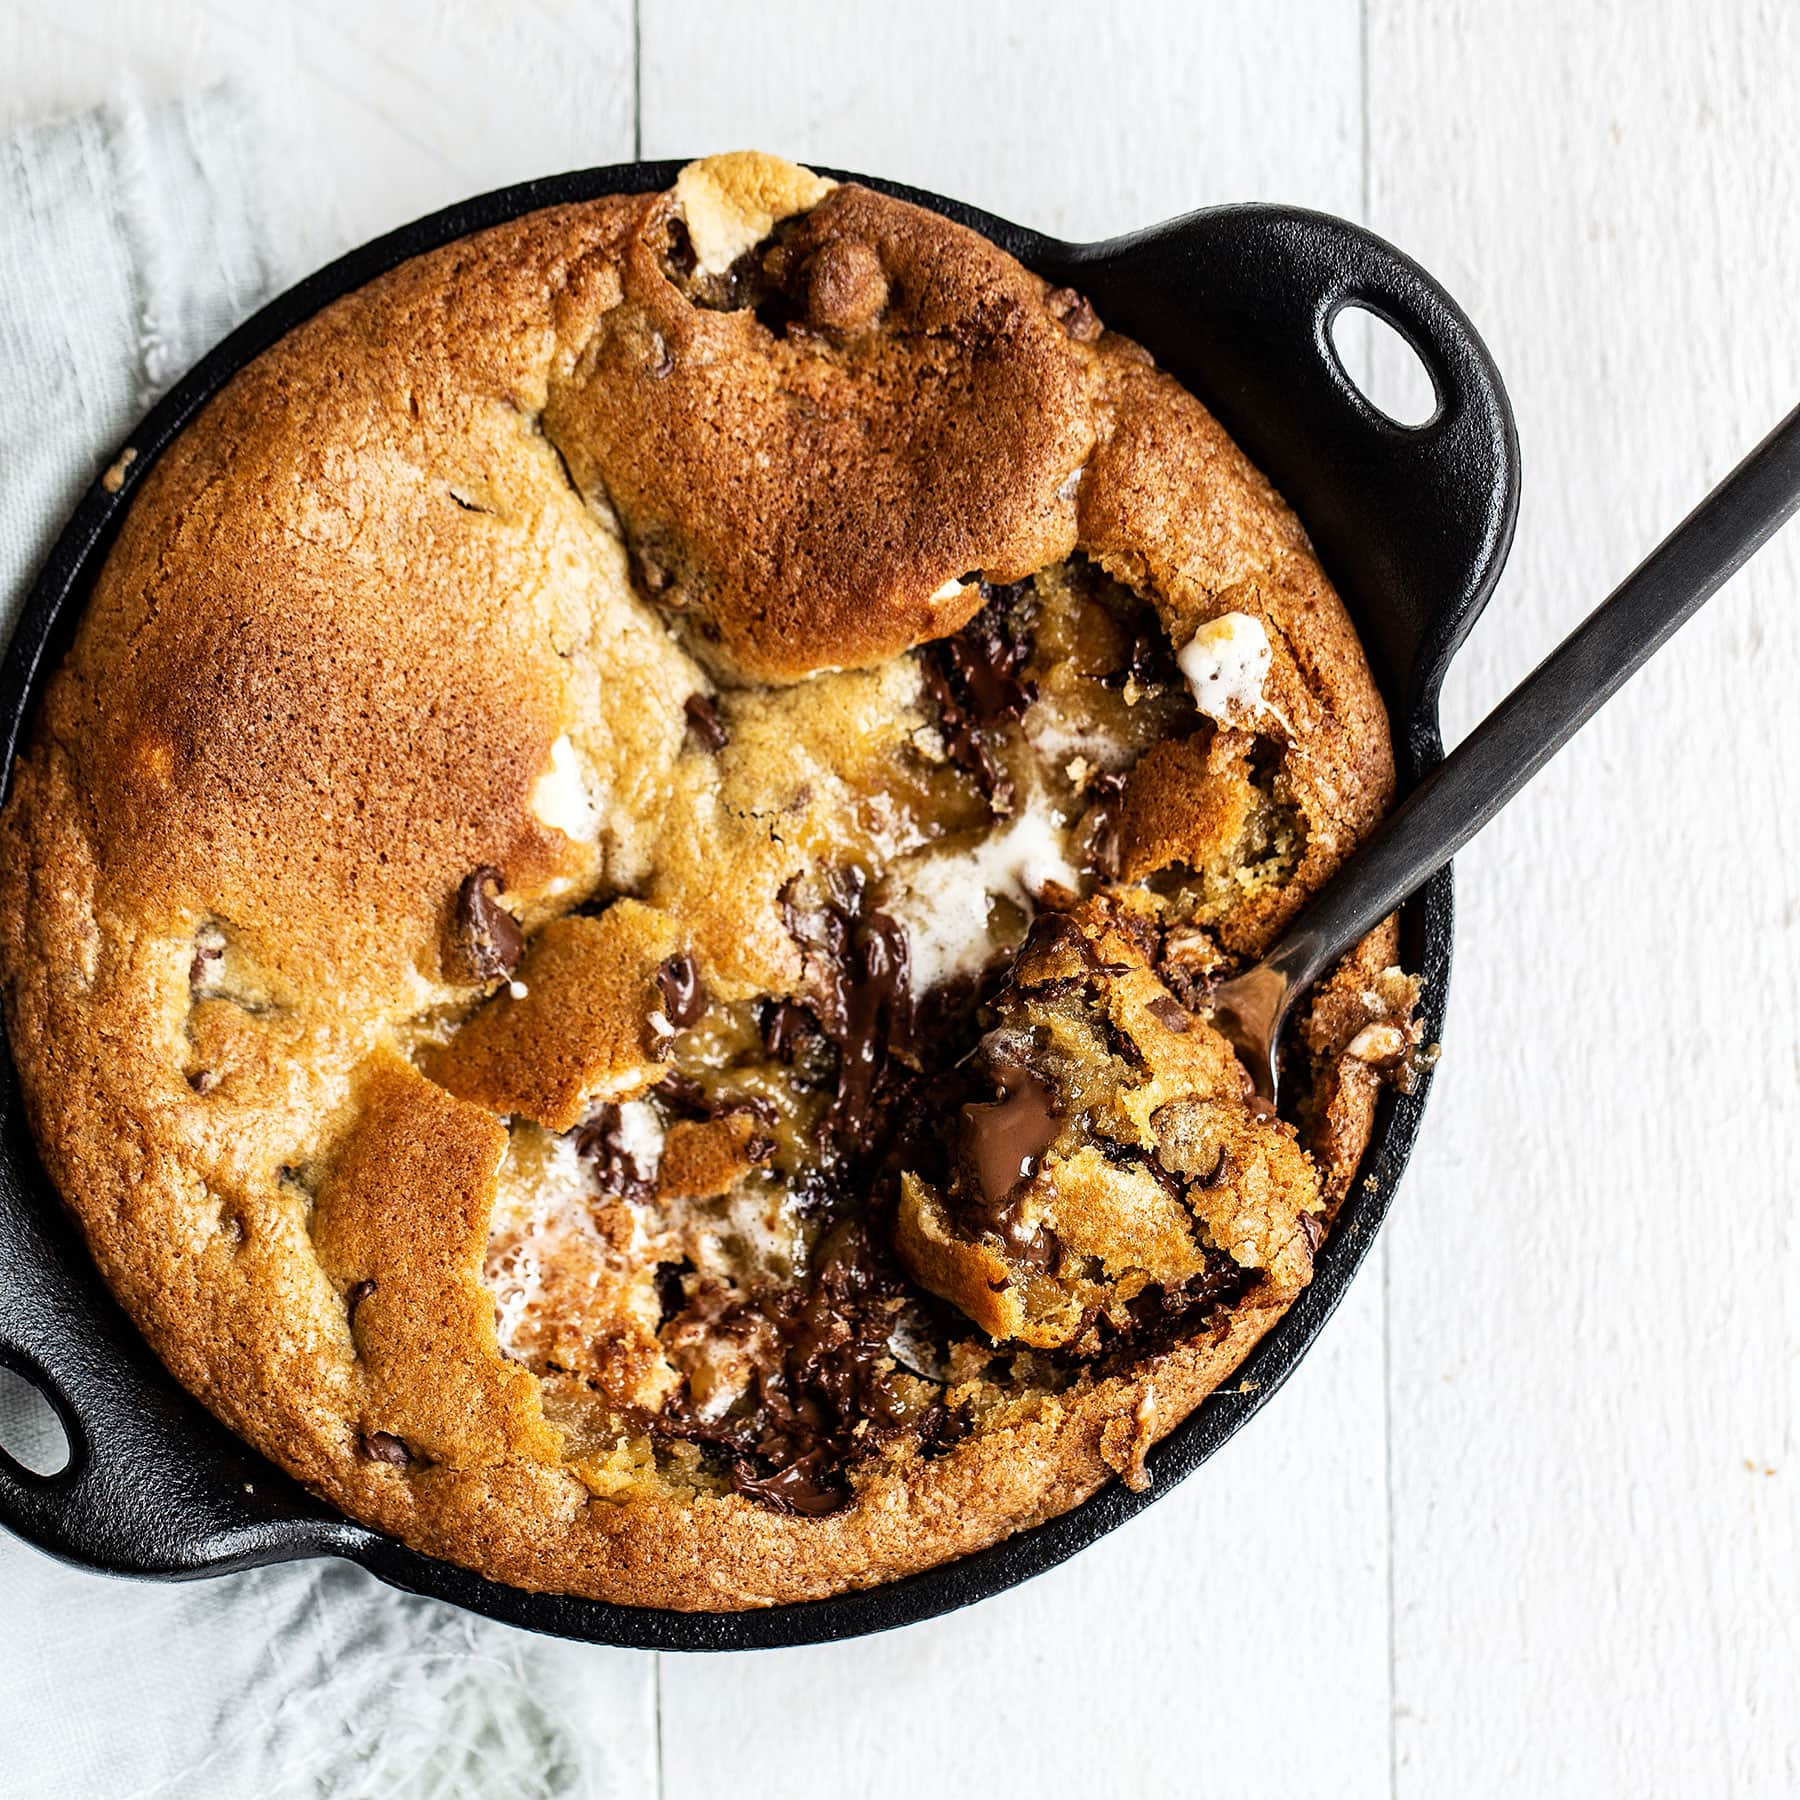 Gooey pizookie stuffed with marshmallow, Hershey's bars, and graham cracker bits